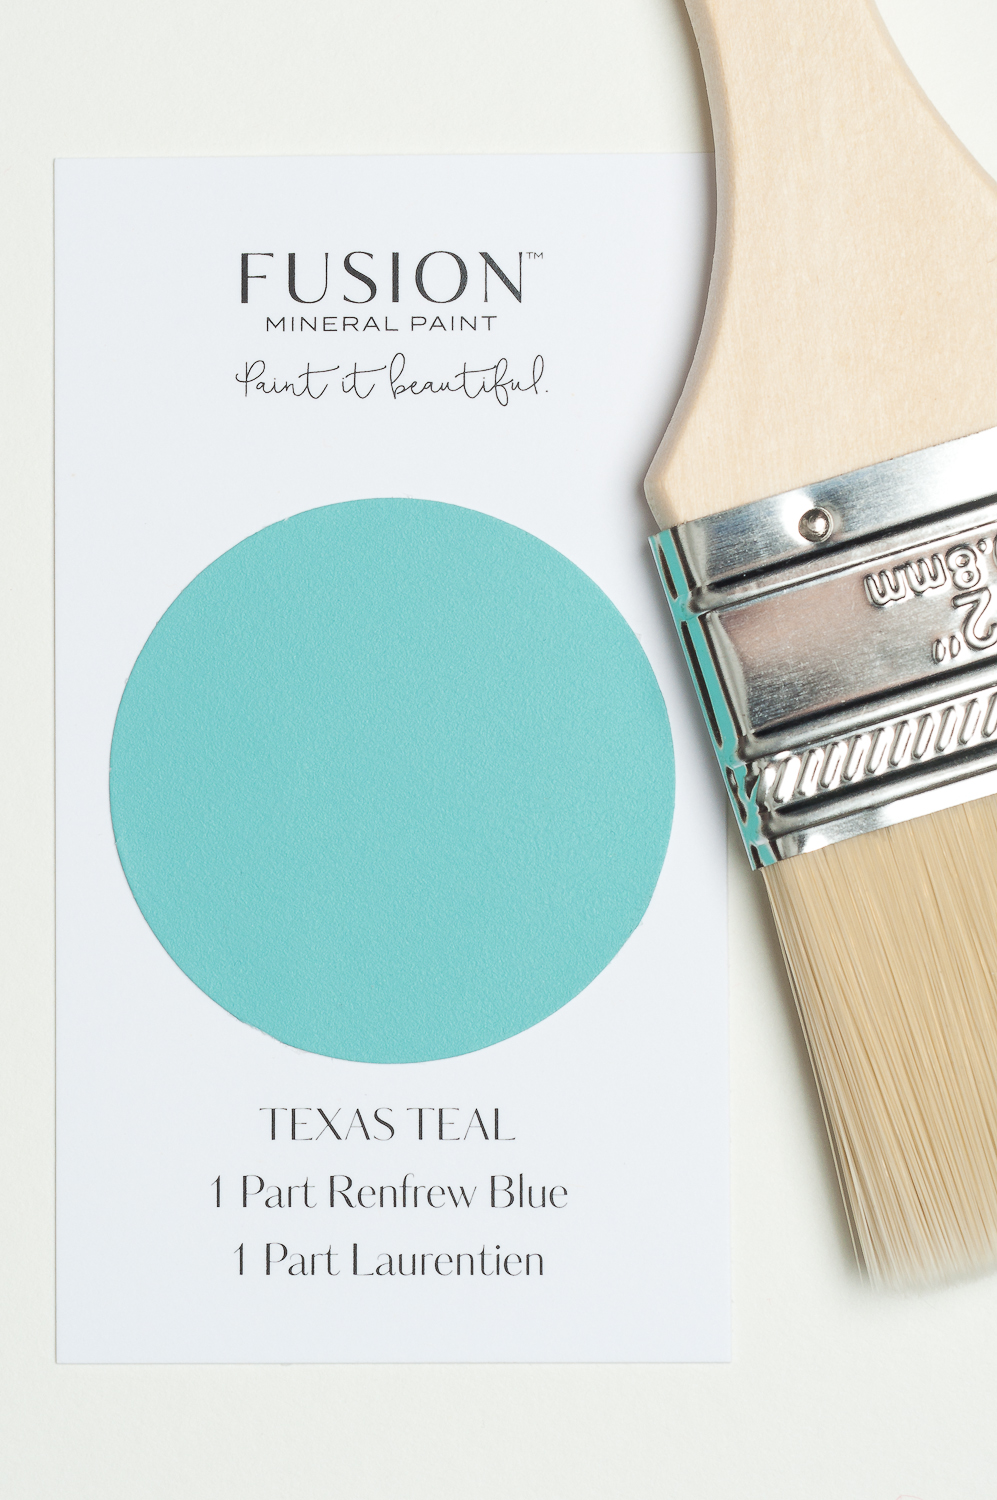 """By mixing Renfrew Blue and Laurentien Fusion Mineral Paint,you can make this beautiful Texas Teal colour. Fusion has created 32 wonderful """"recipe"""" cards for mixing custom colours. You can see all 32 recipes on my website."""